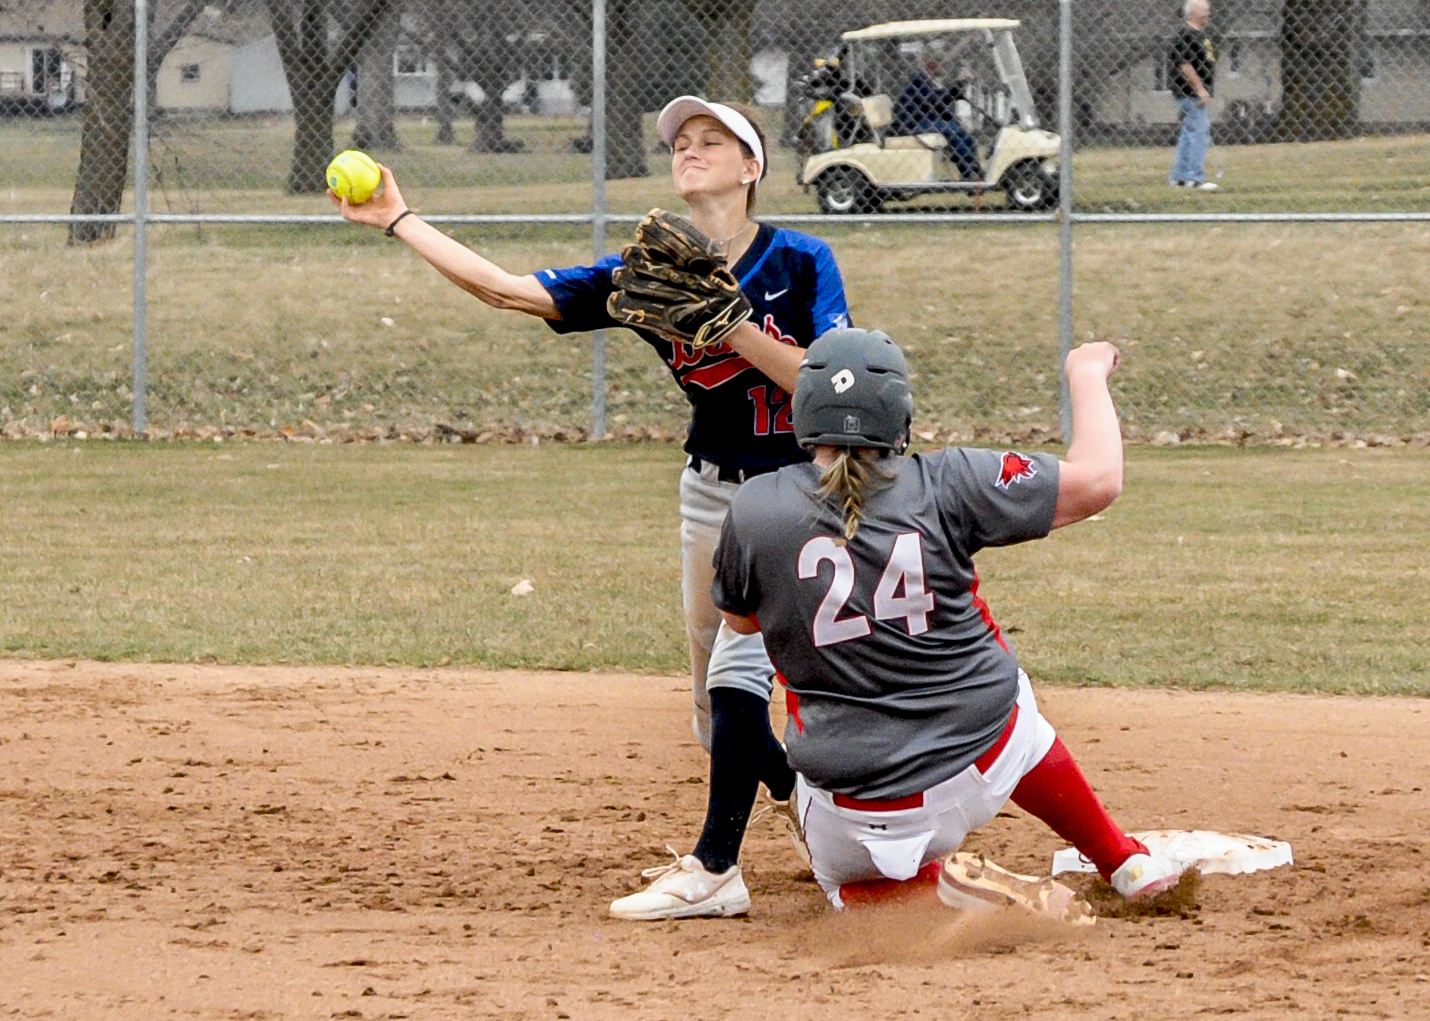 Mia Ruther turning a double play